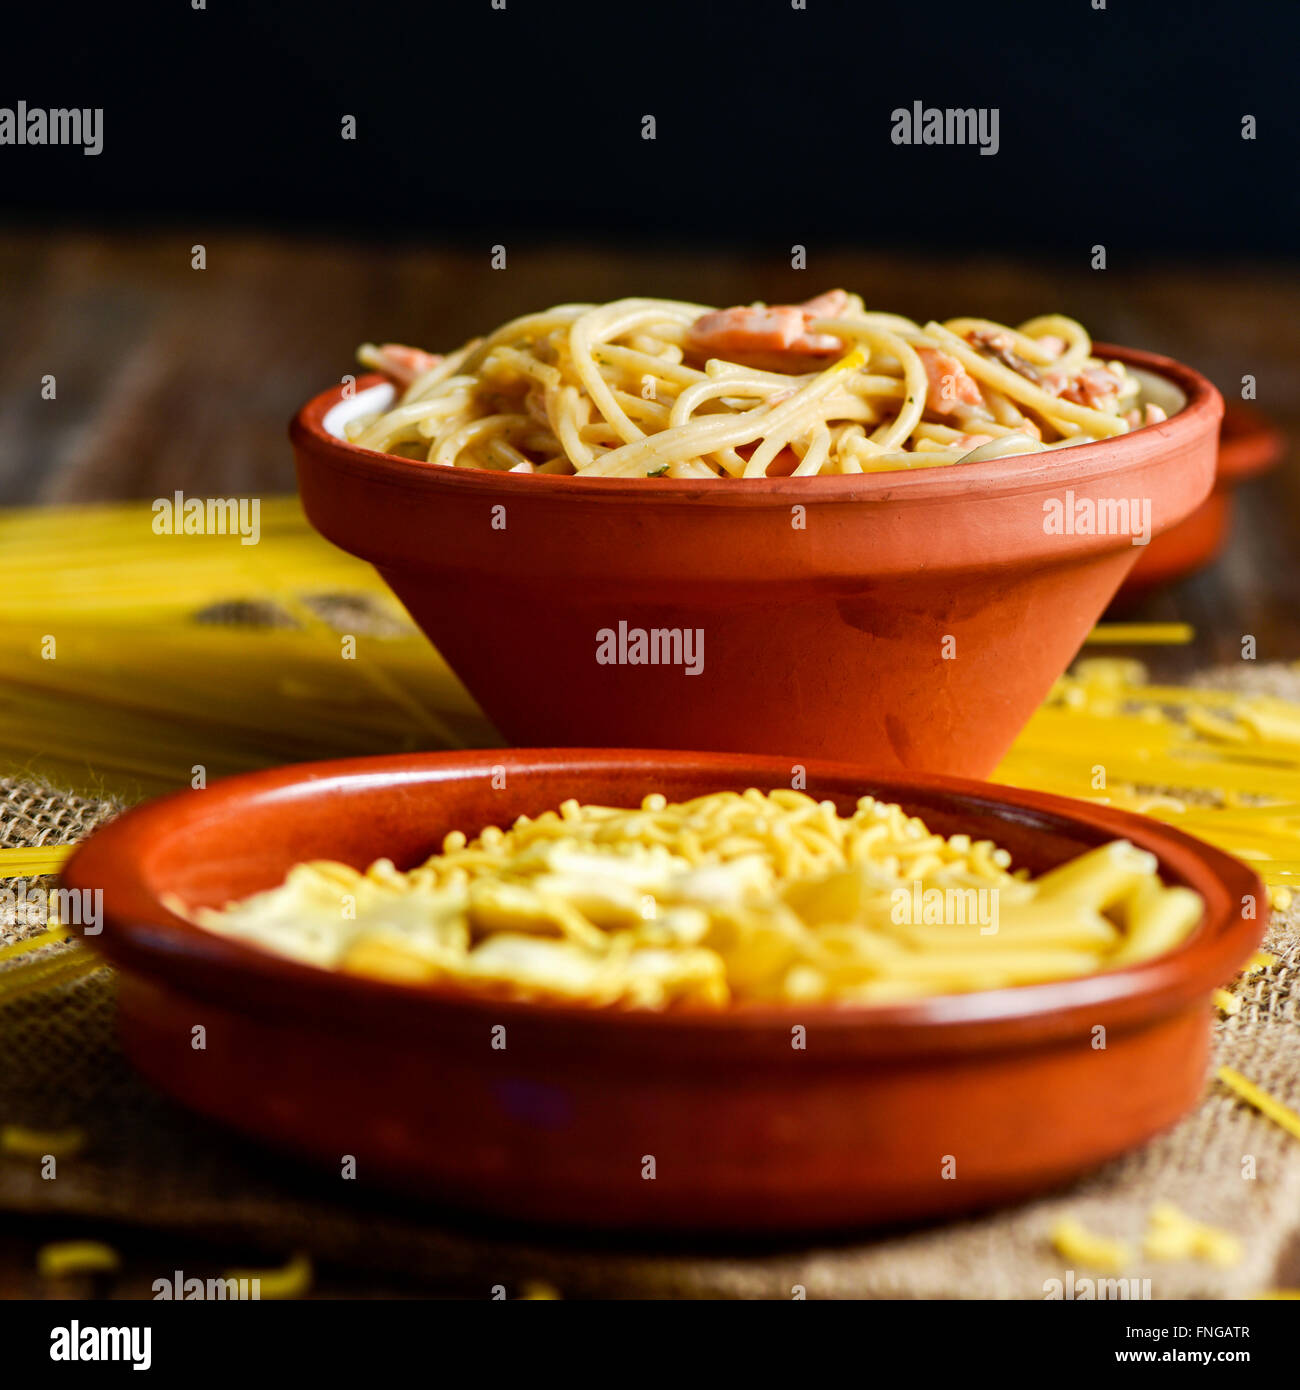 closeup of an earthenware plate with some uncooked pasta and an earthenware bowl with spaghetti alla carbonara, - Stock Image